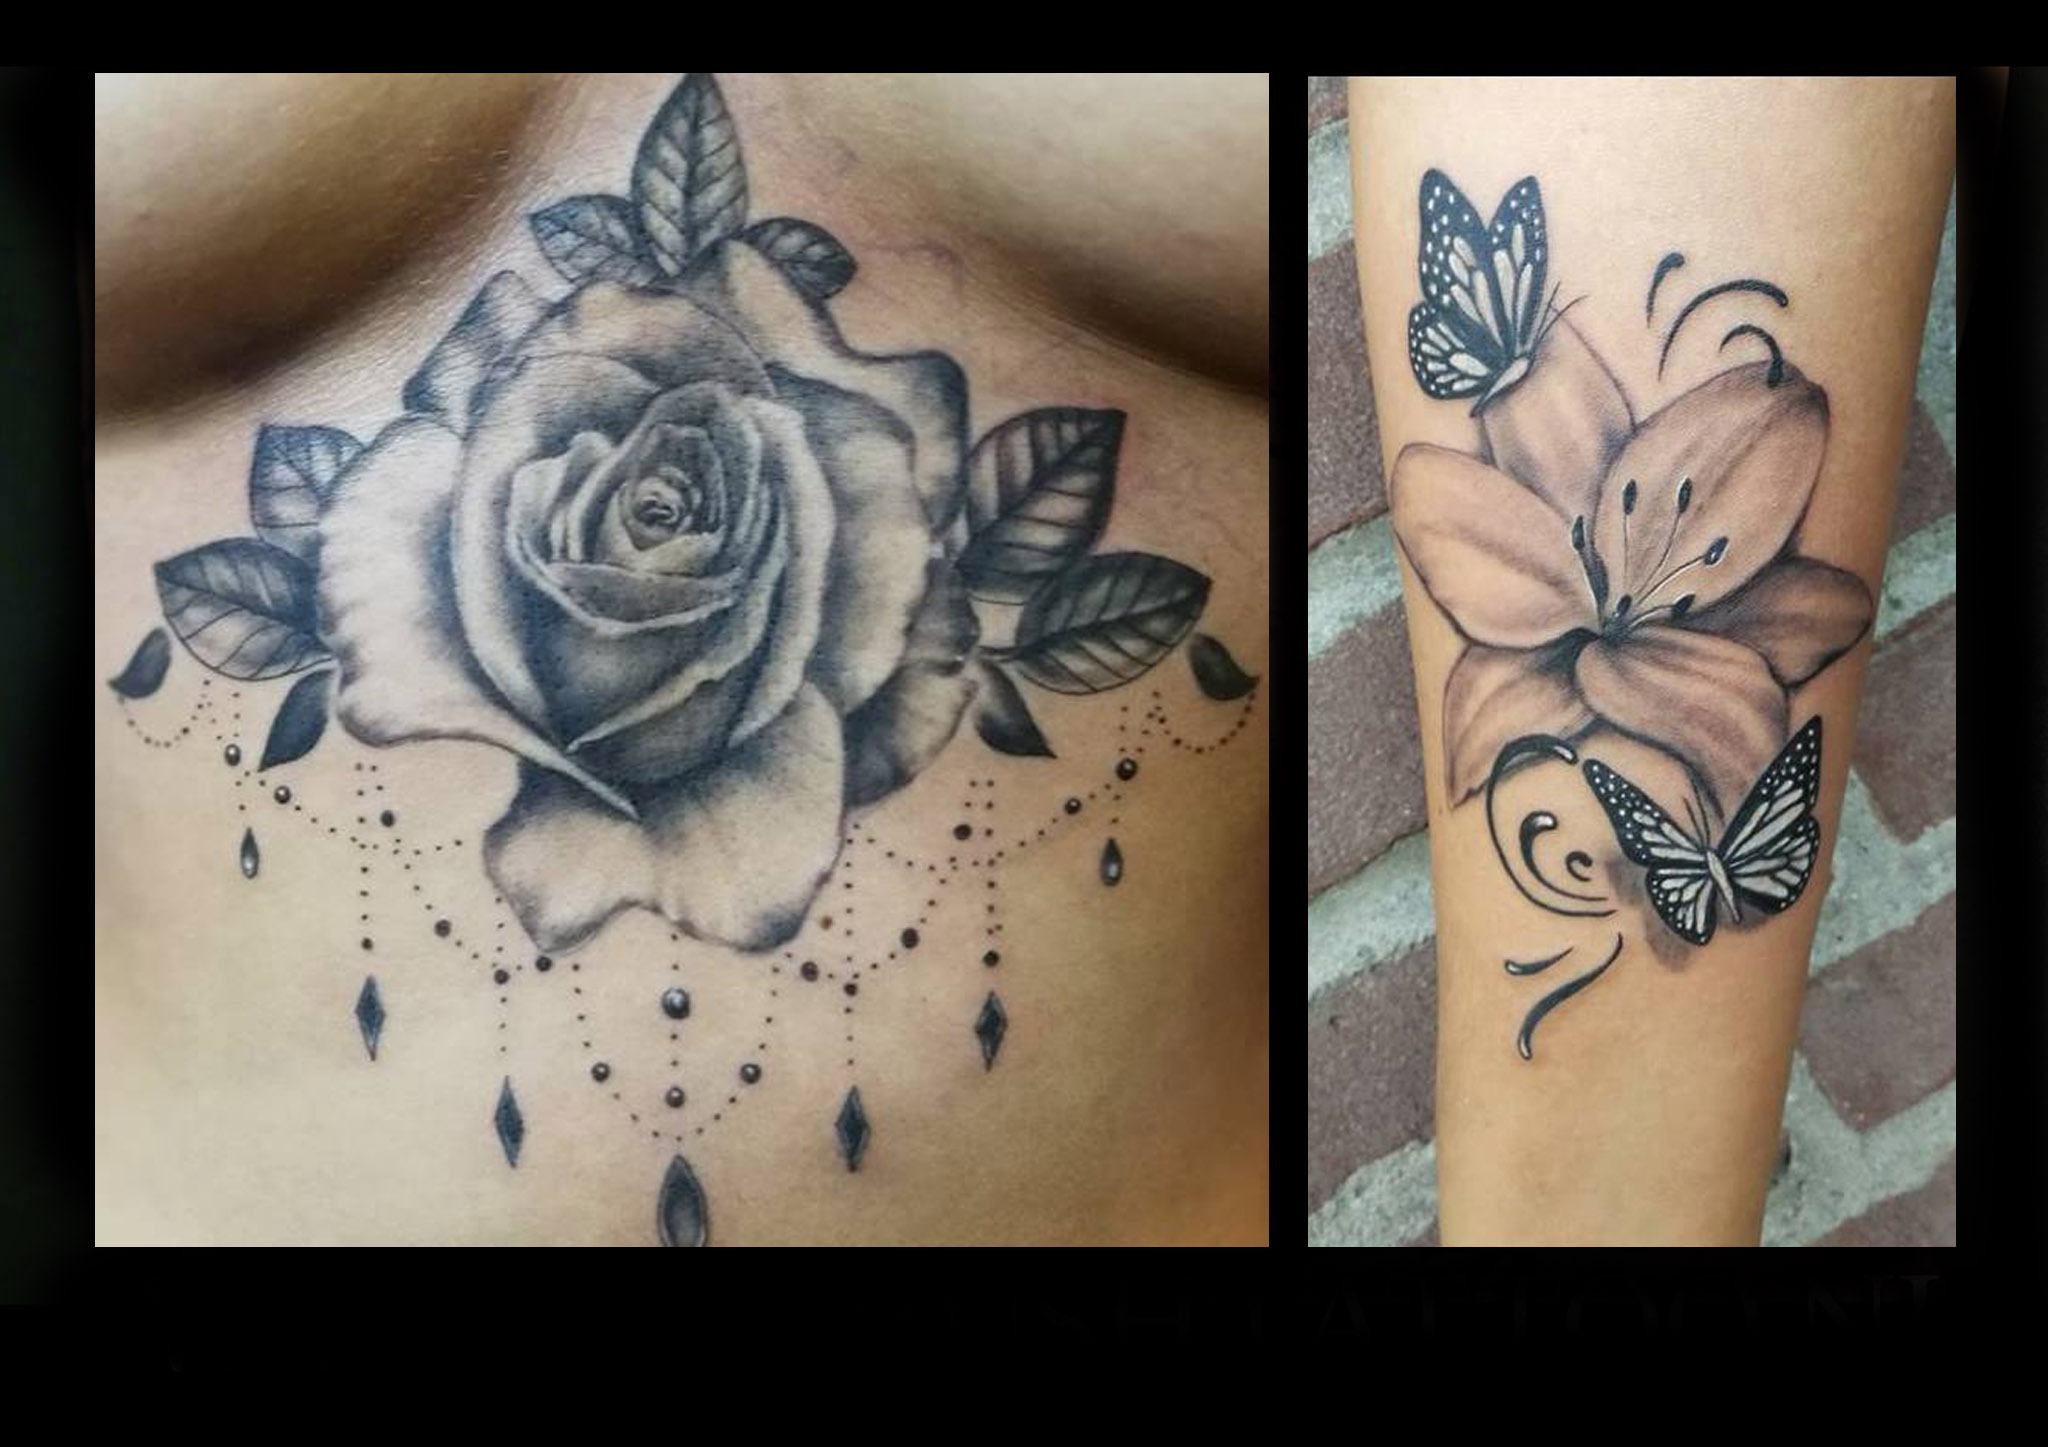 Ink Rush Tattoos And Art Tattoostudio Cuijk